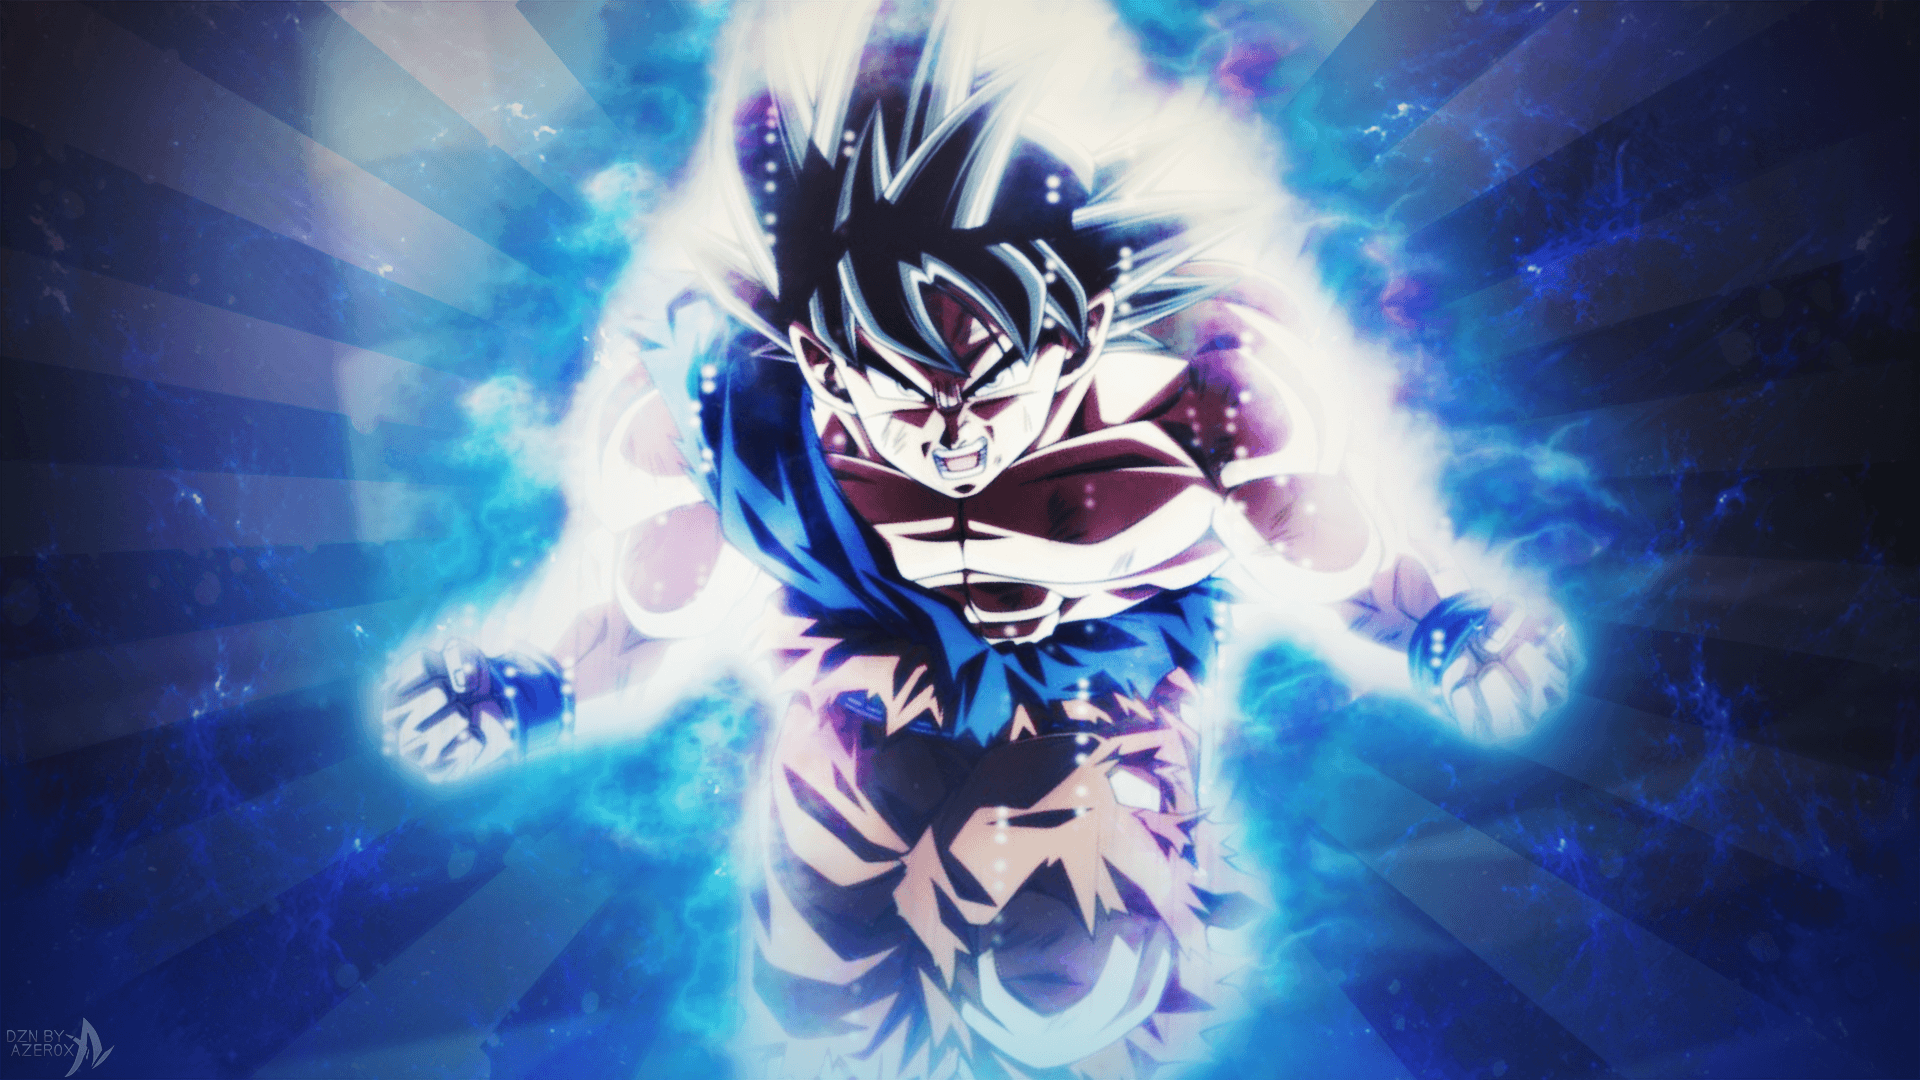 dragon ball super wallpaper ultra instinct, ultra instinct goku png